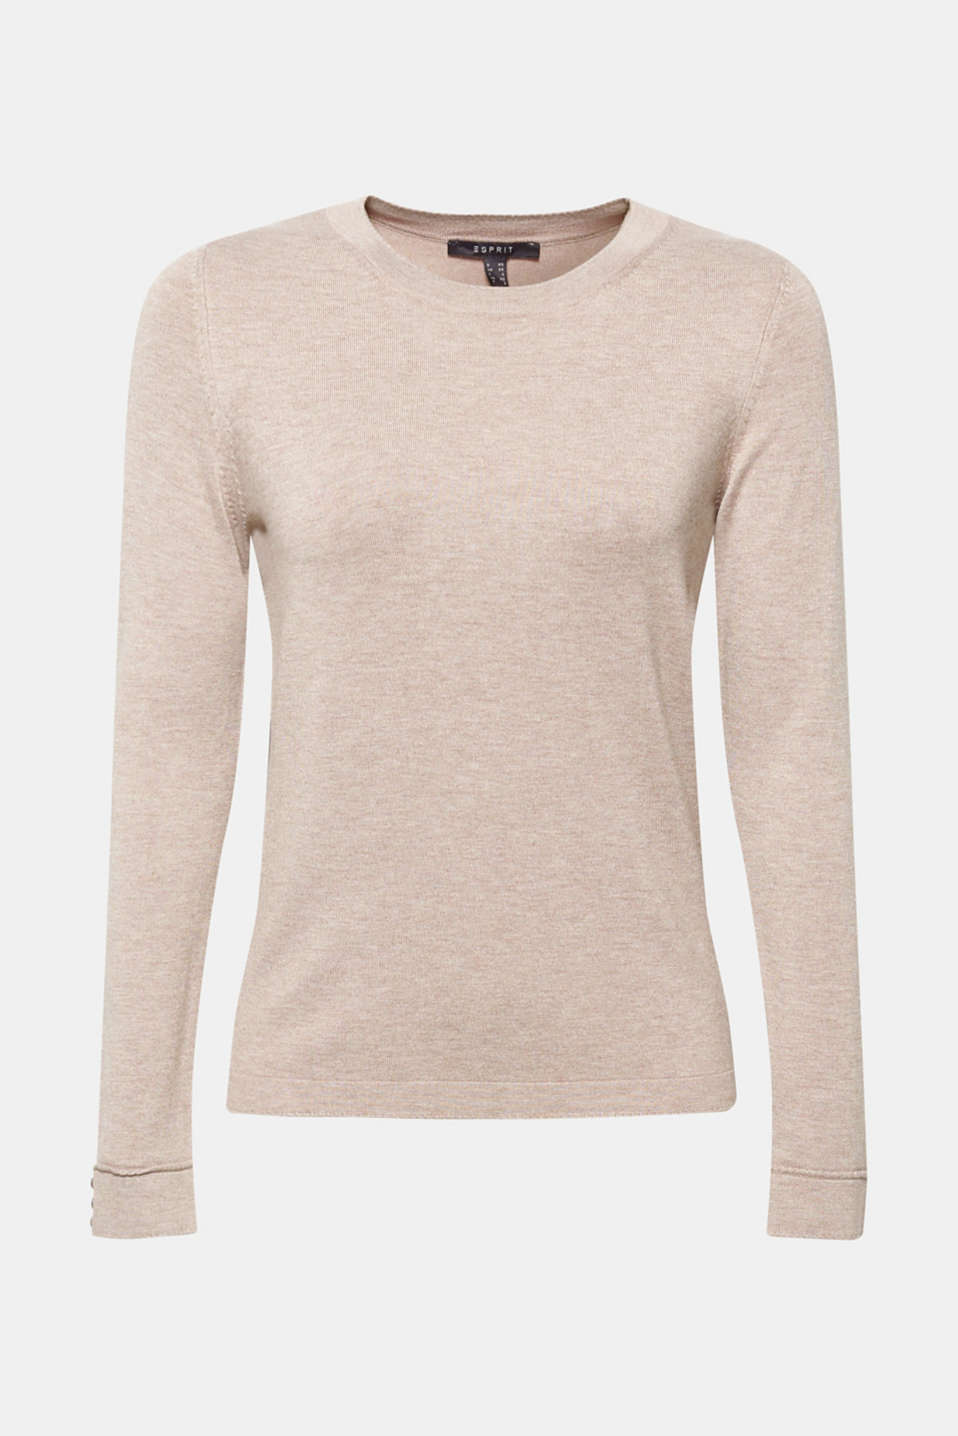 Sweaters, LIGHT TAUPE 5, detail image number 6